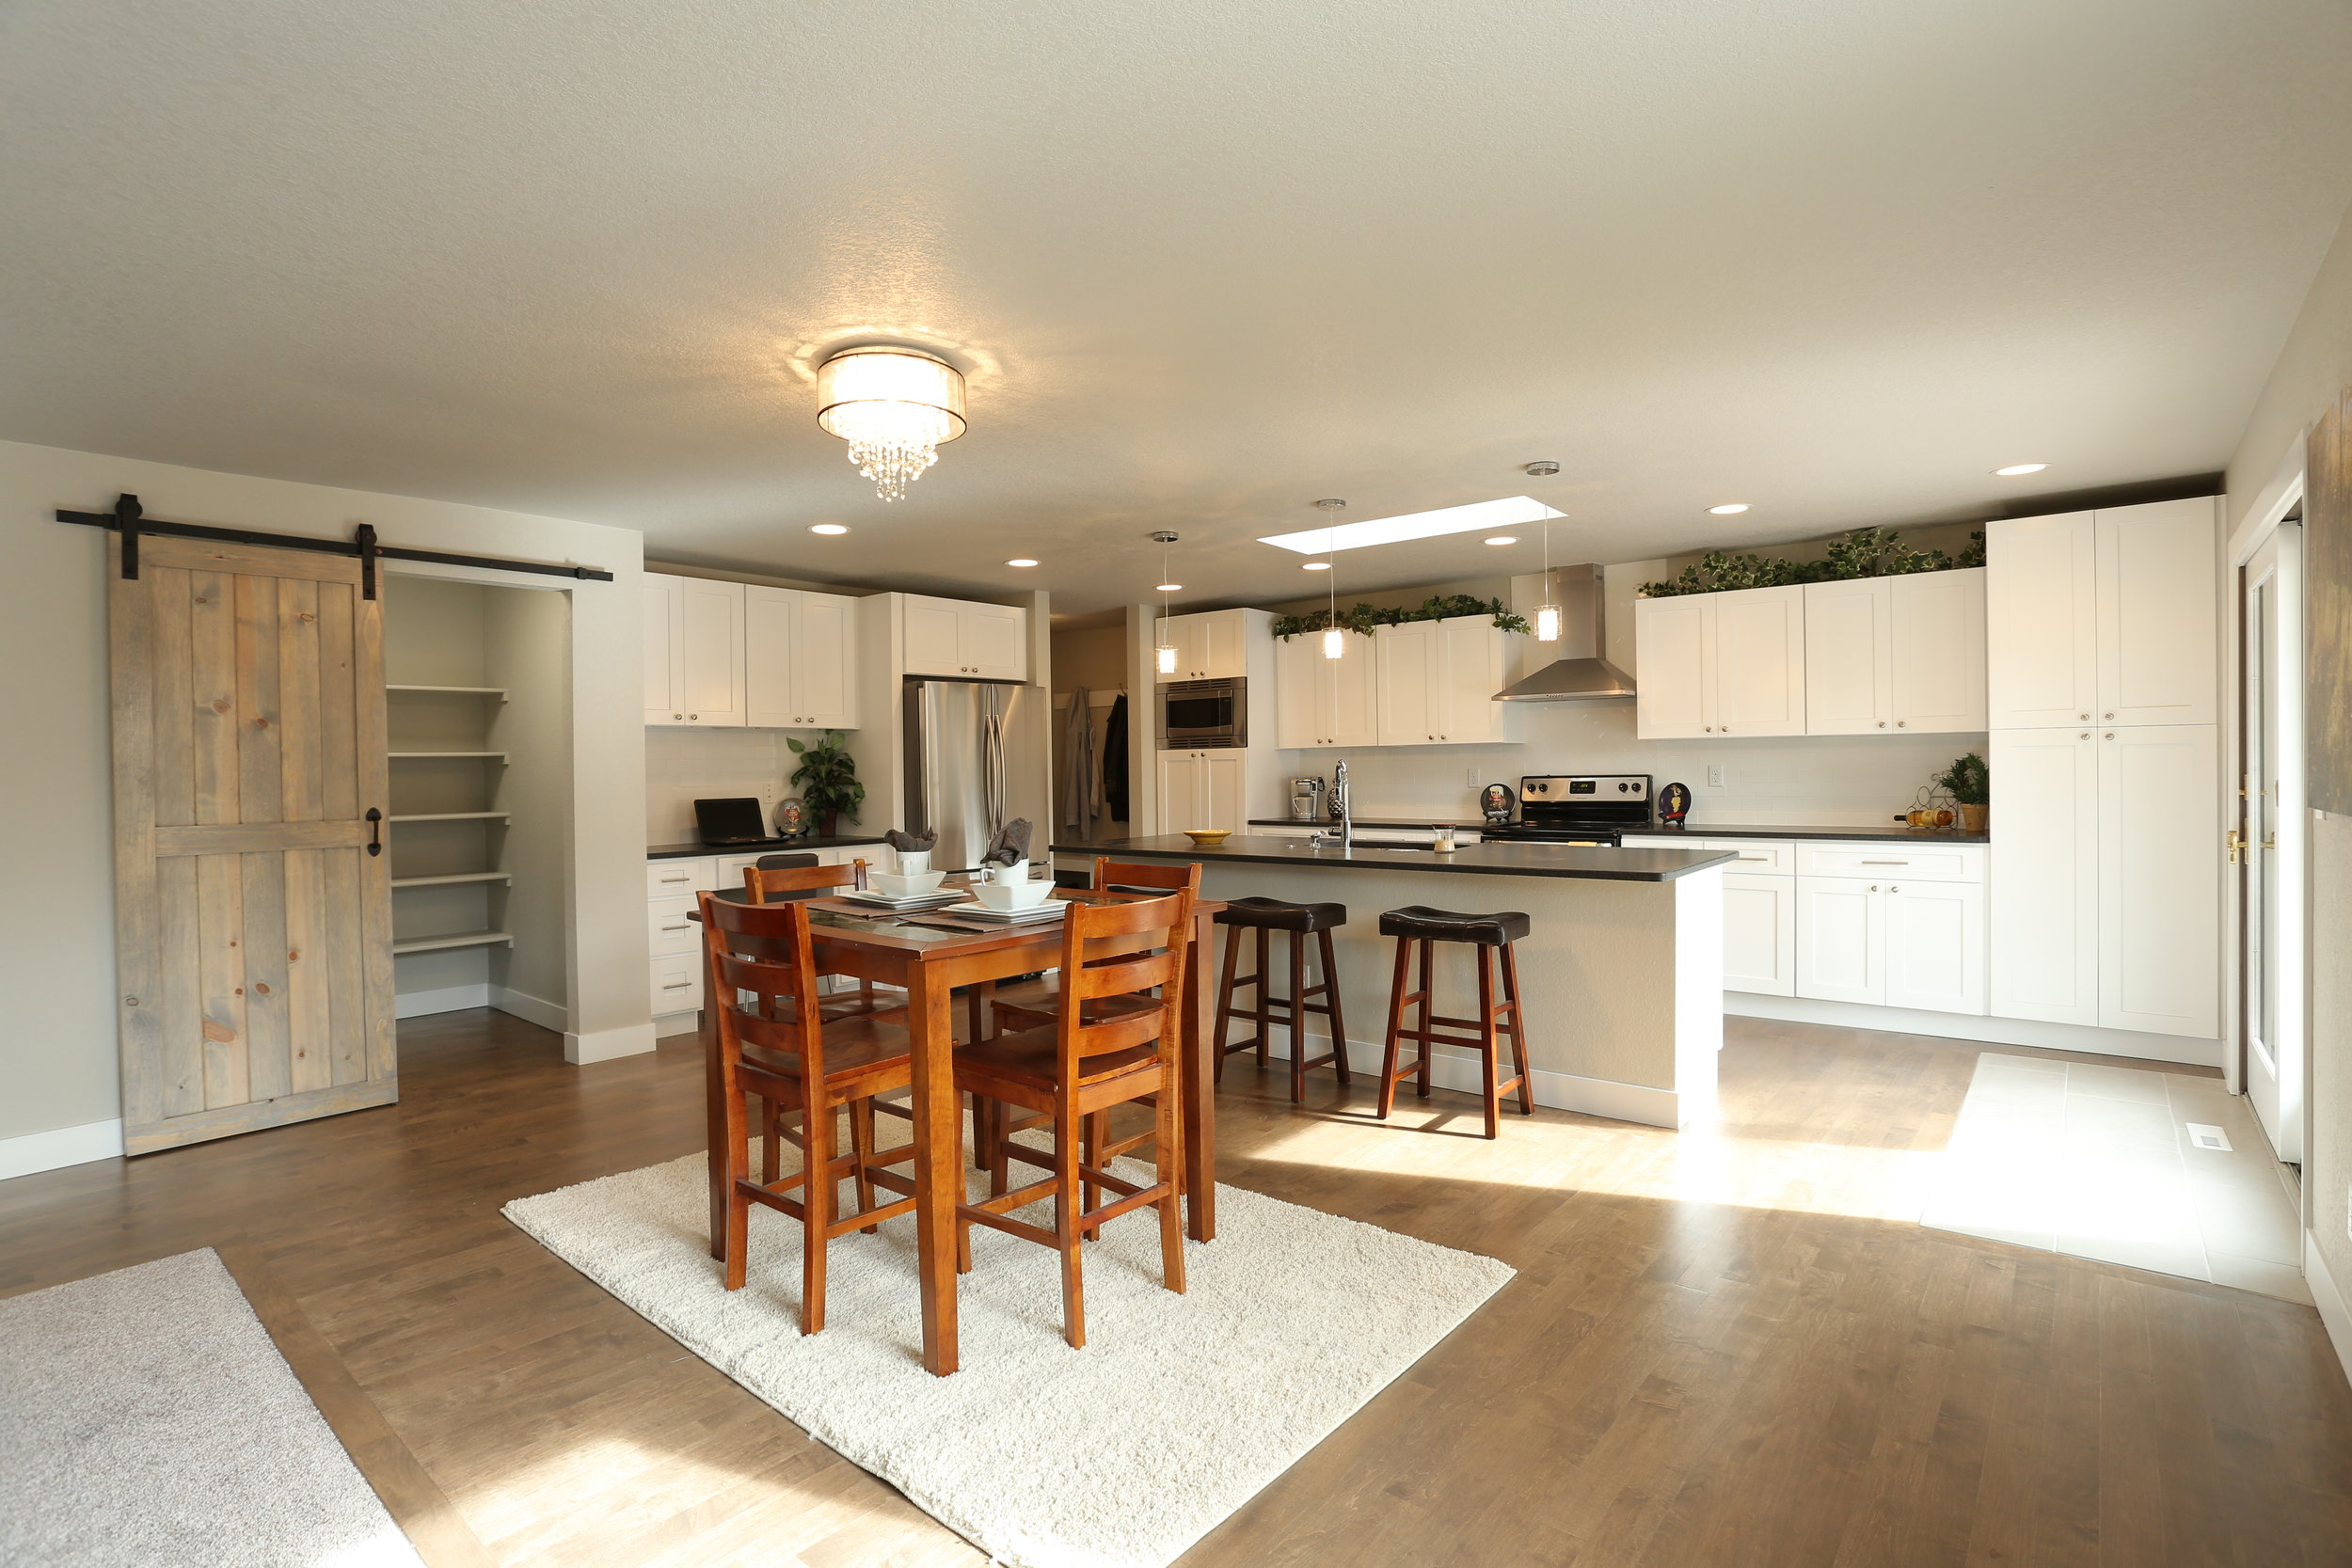 open floor concept with refinished maple wood floors and large kitchen island